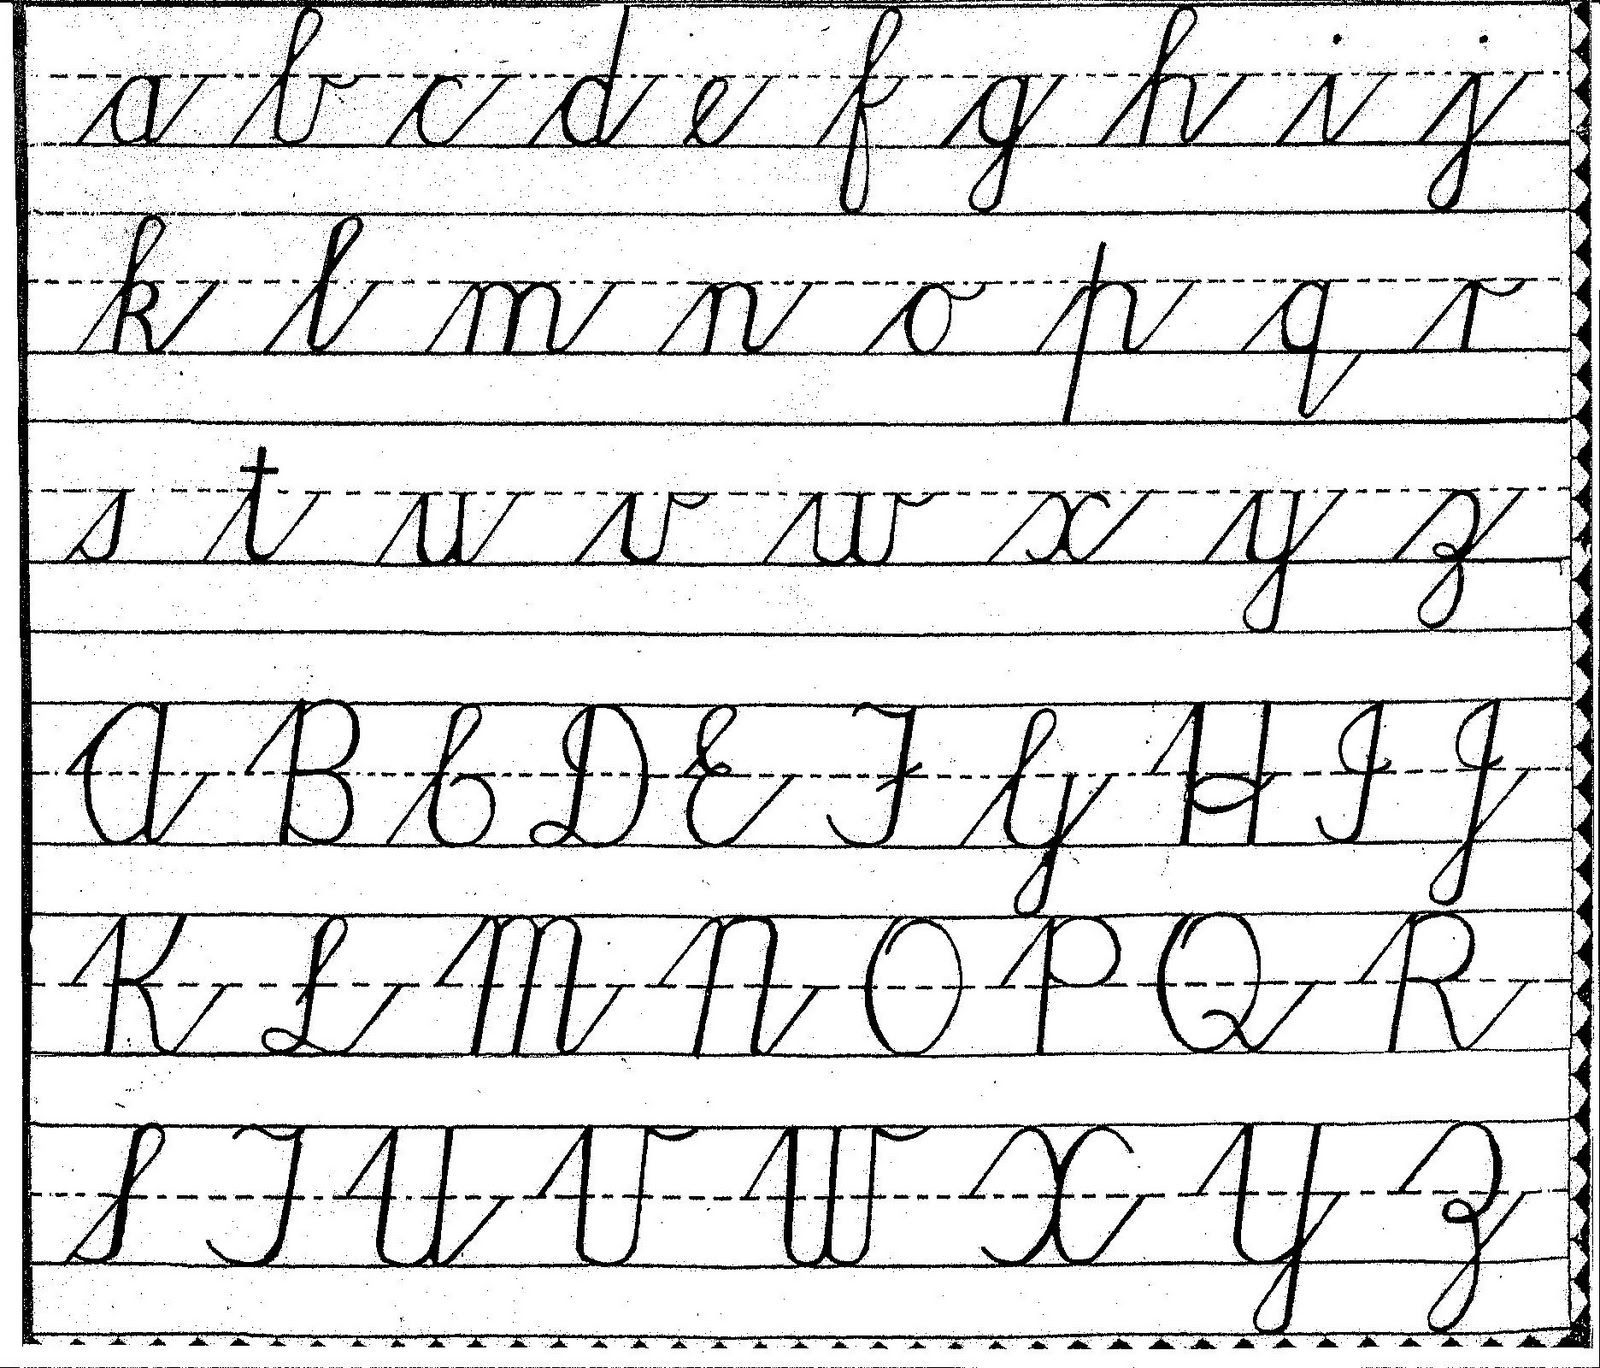 Collection Of Free Cursive Handwriting From All The Teaching Cursive Cursive Handwriting Worksheets Cursive Writing Worksheets [ 1368 x 1600 Pixel ]